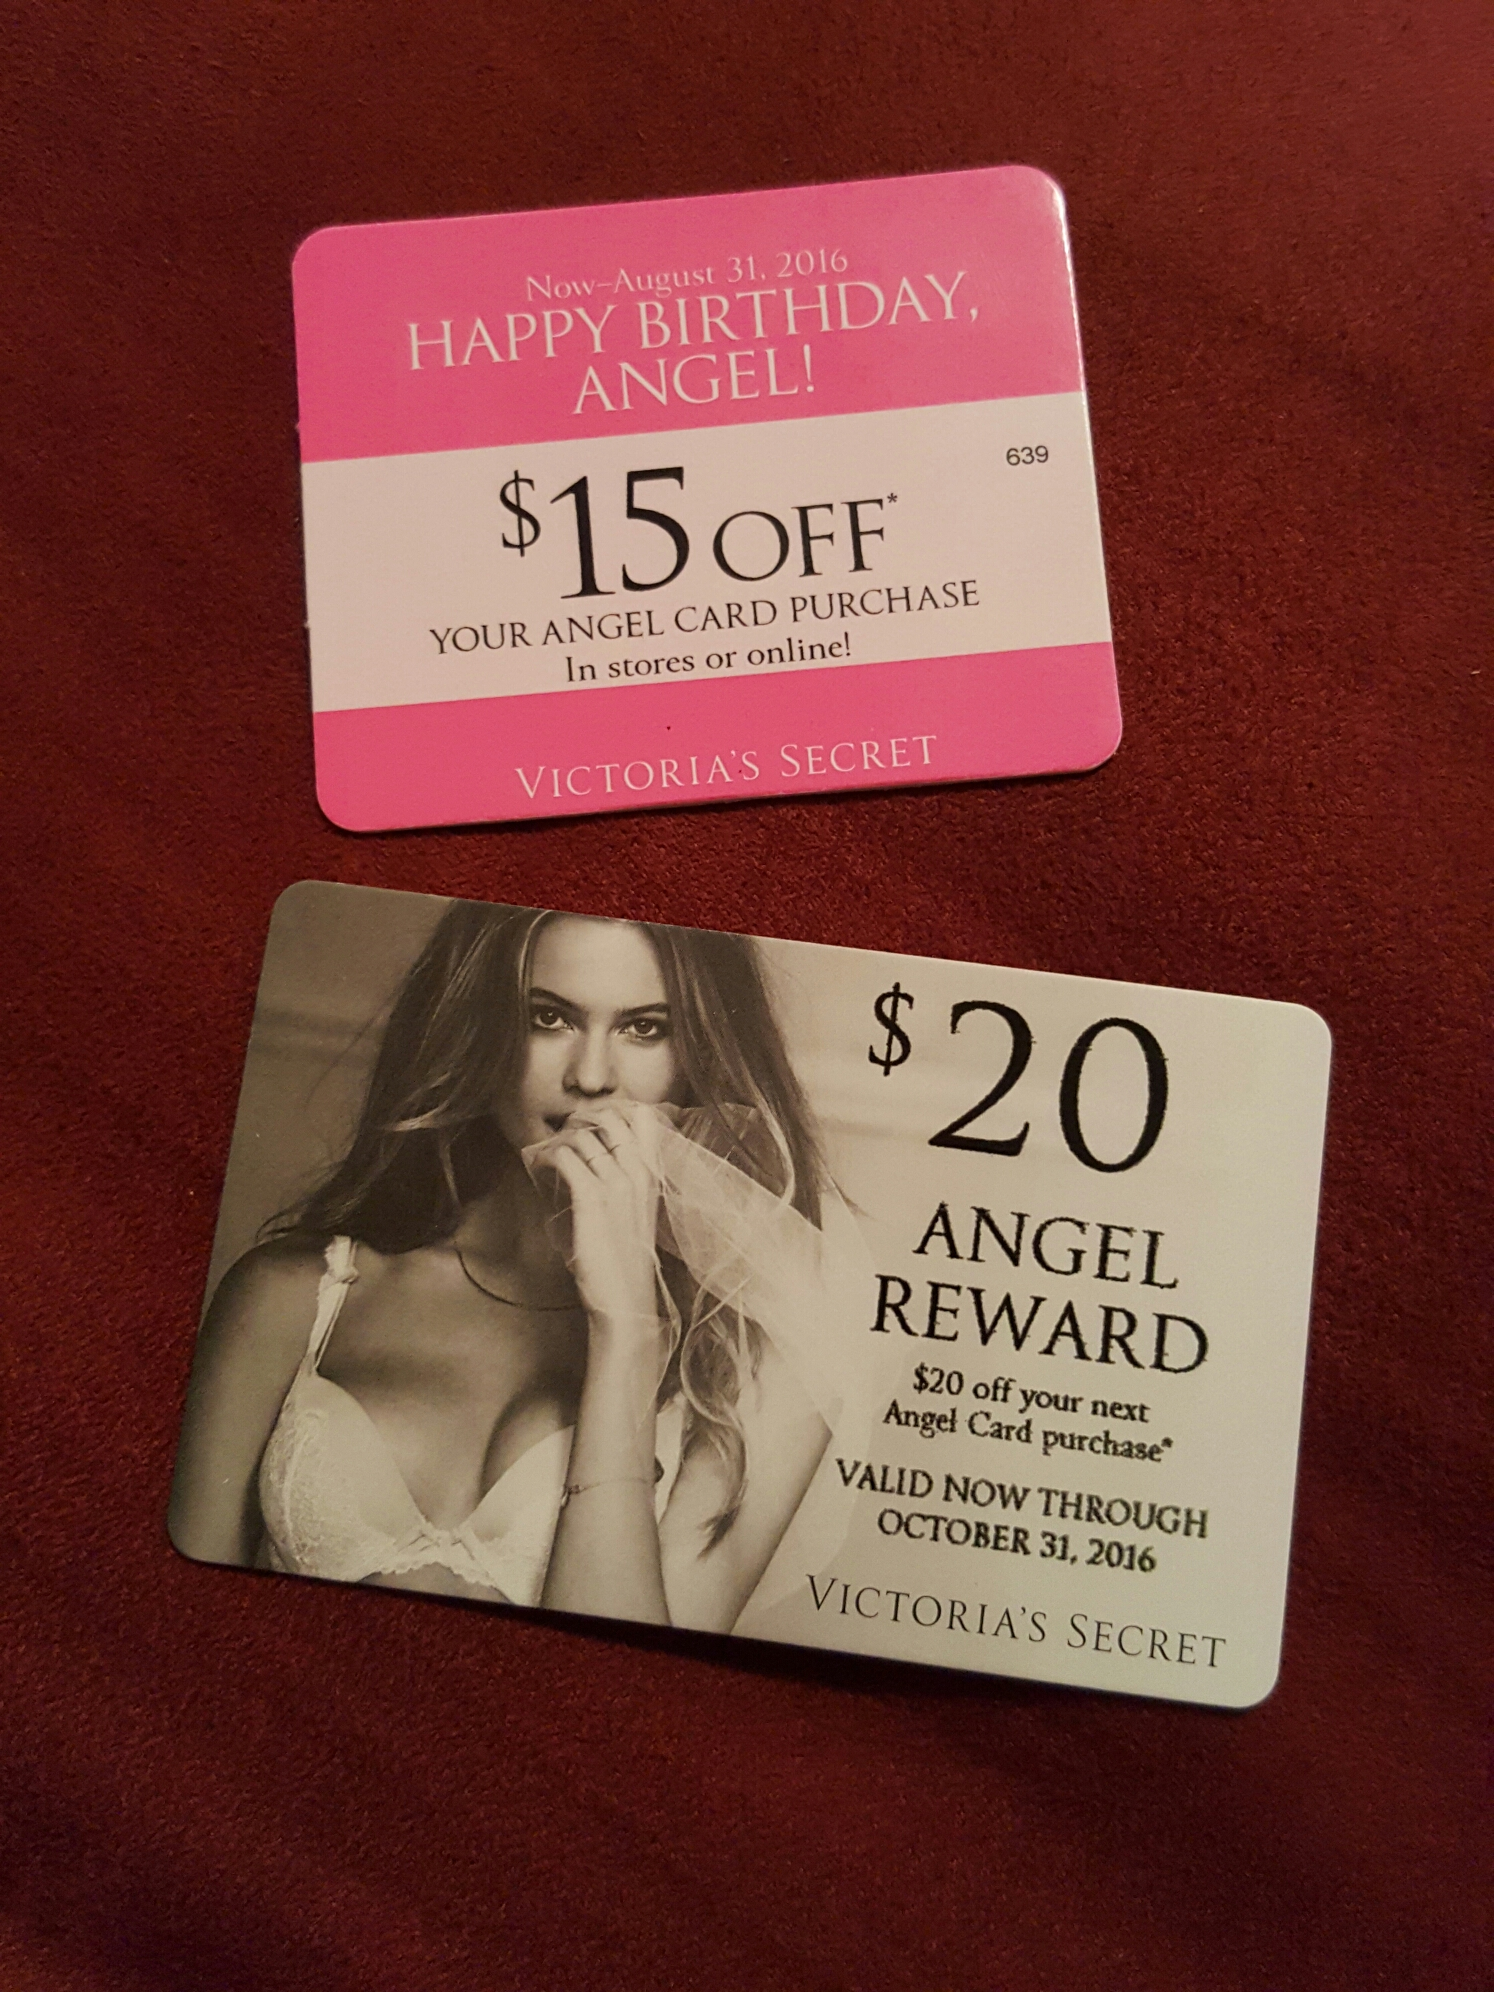 Victoria Secret Credit Card Birthday Gift In My Life With VS On Their Bridal And Holiday Wishlists I Would Use The